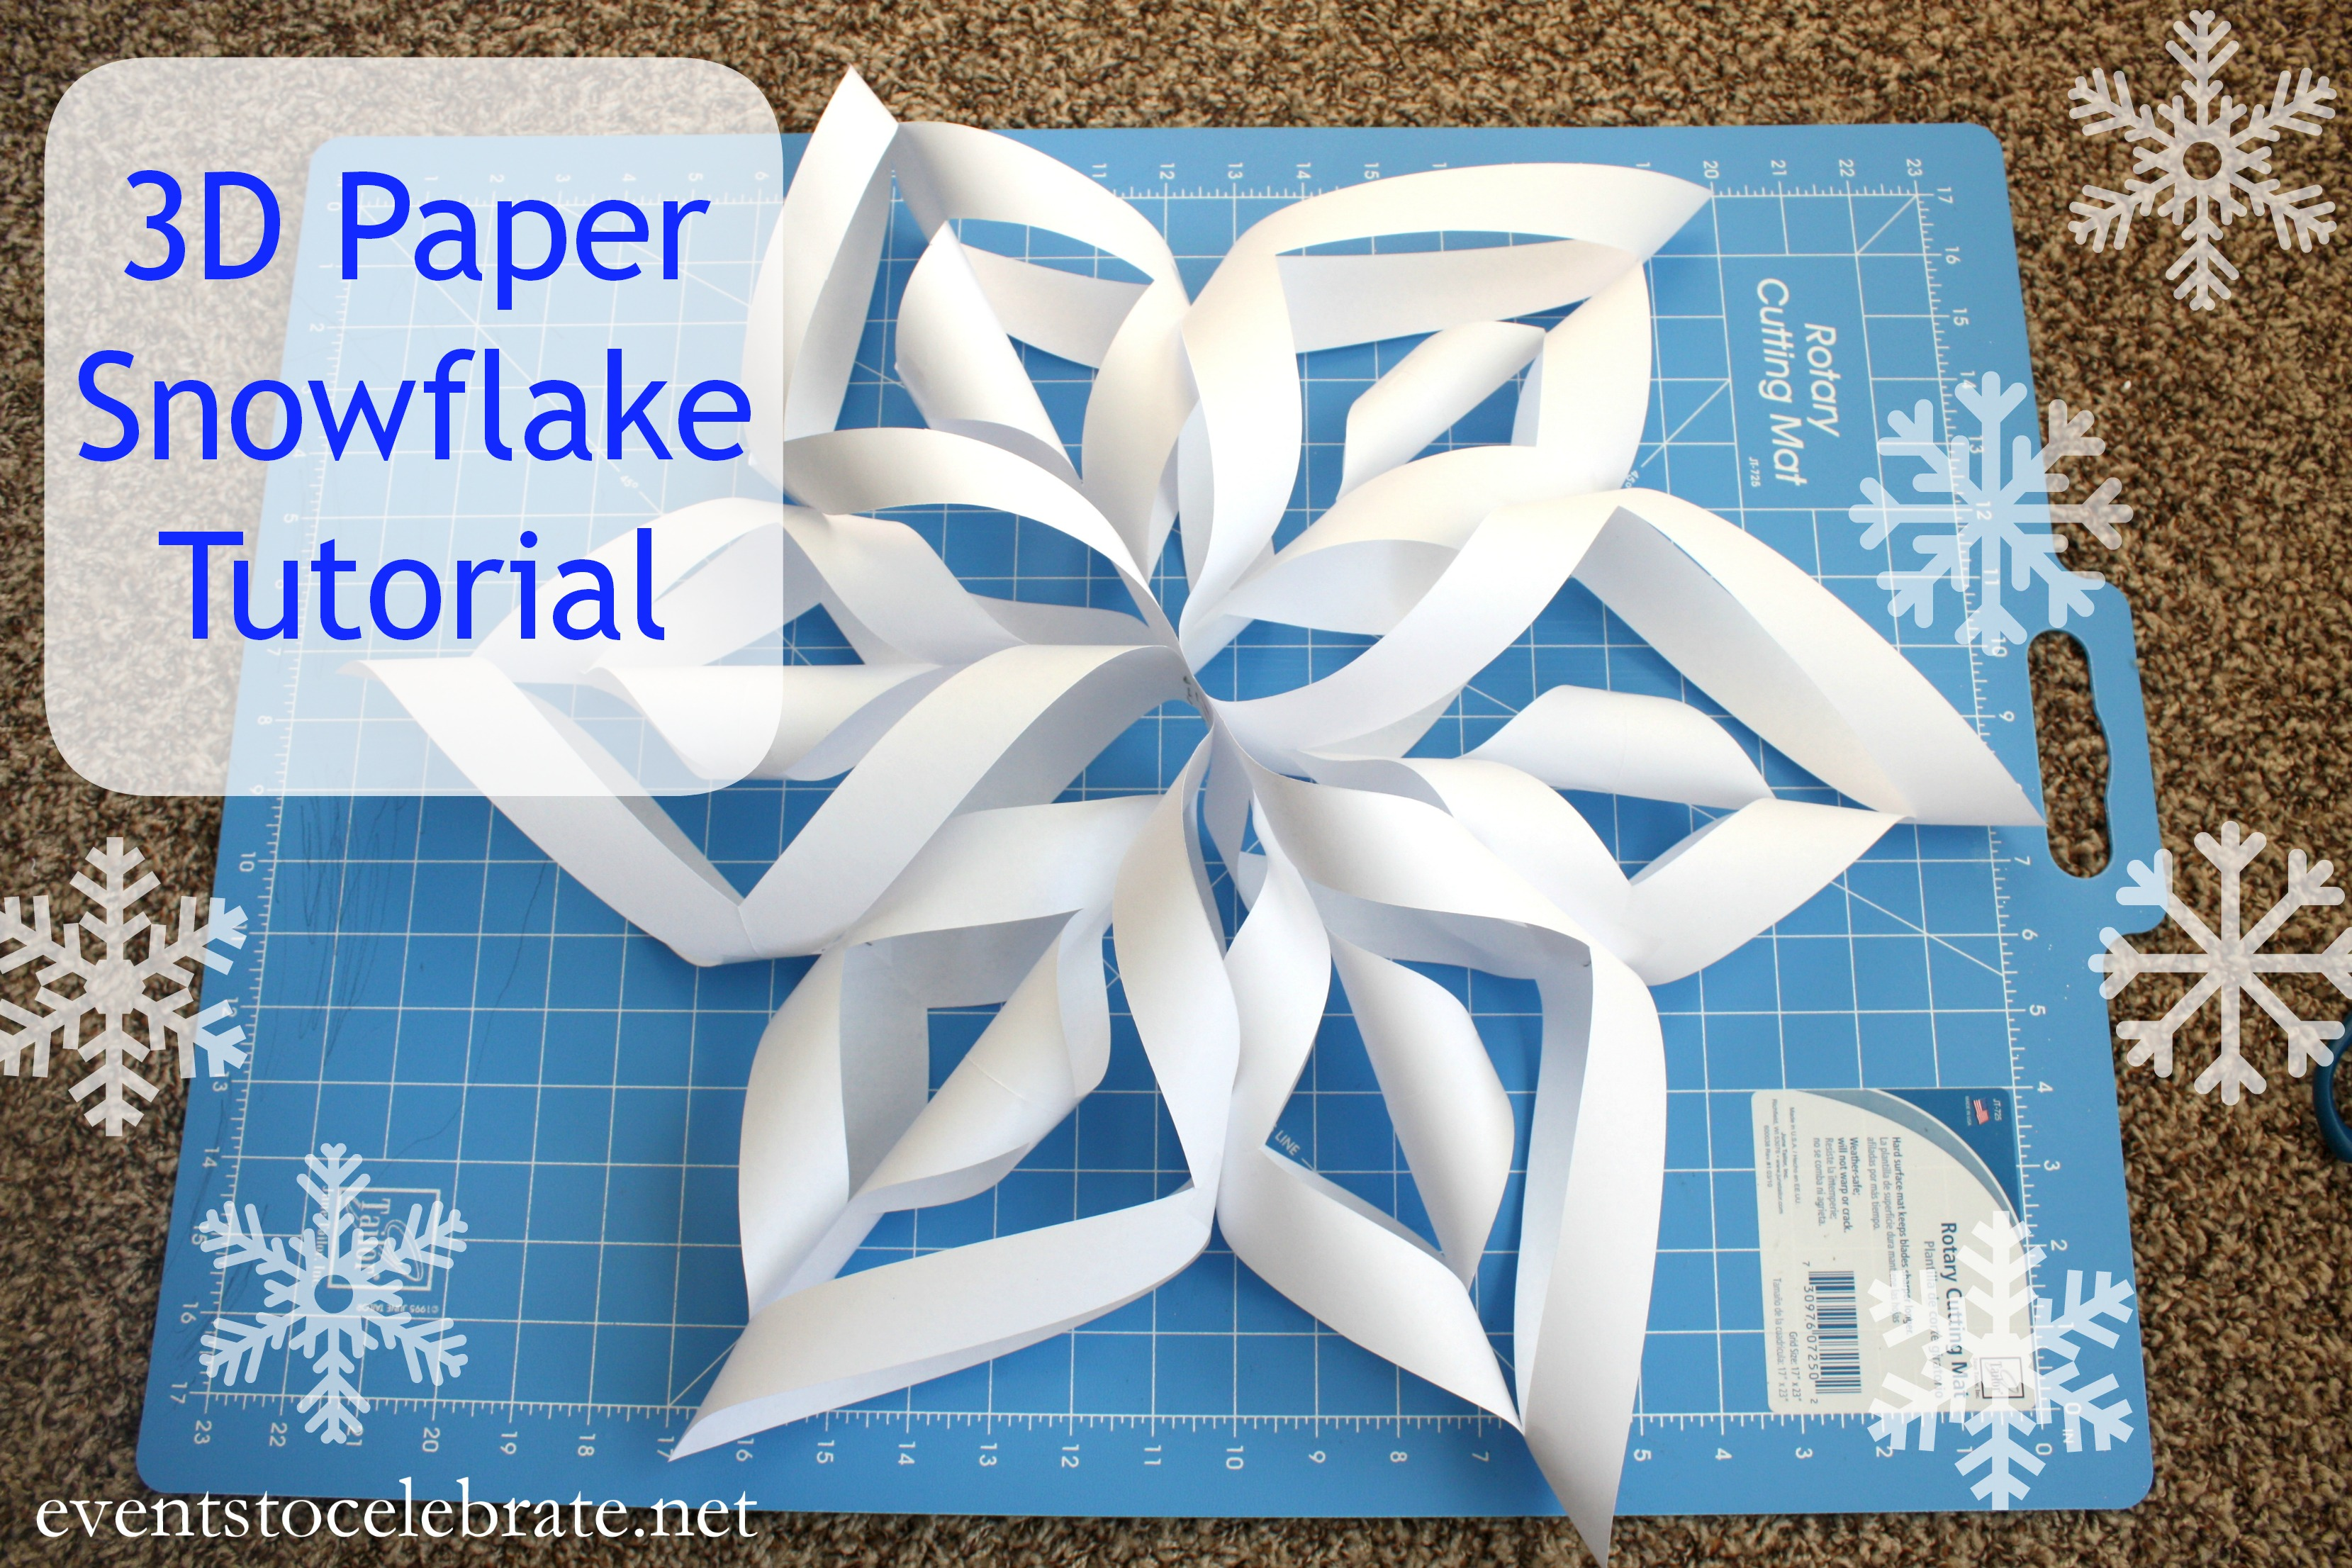 How to make a 3D Paper Snowflake -